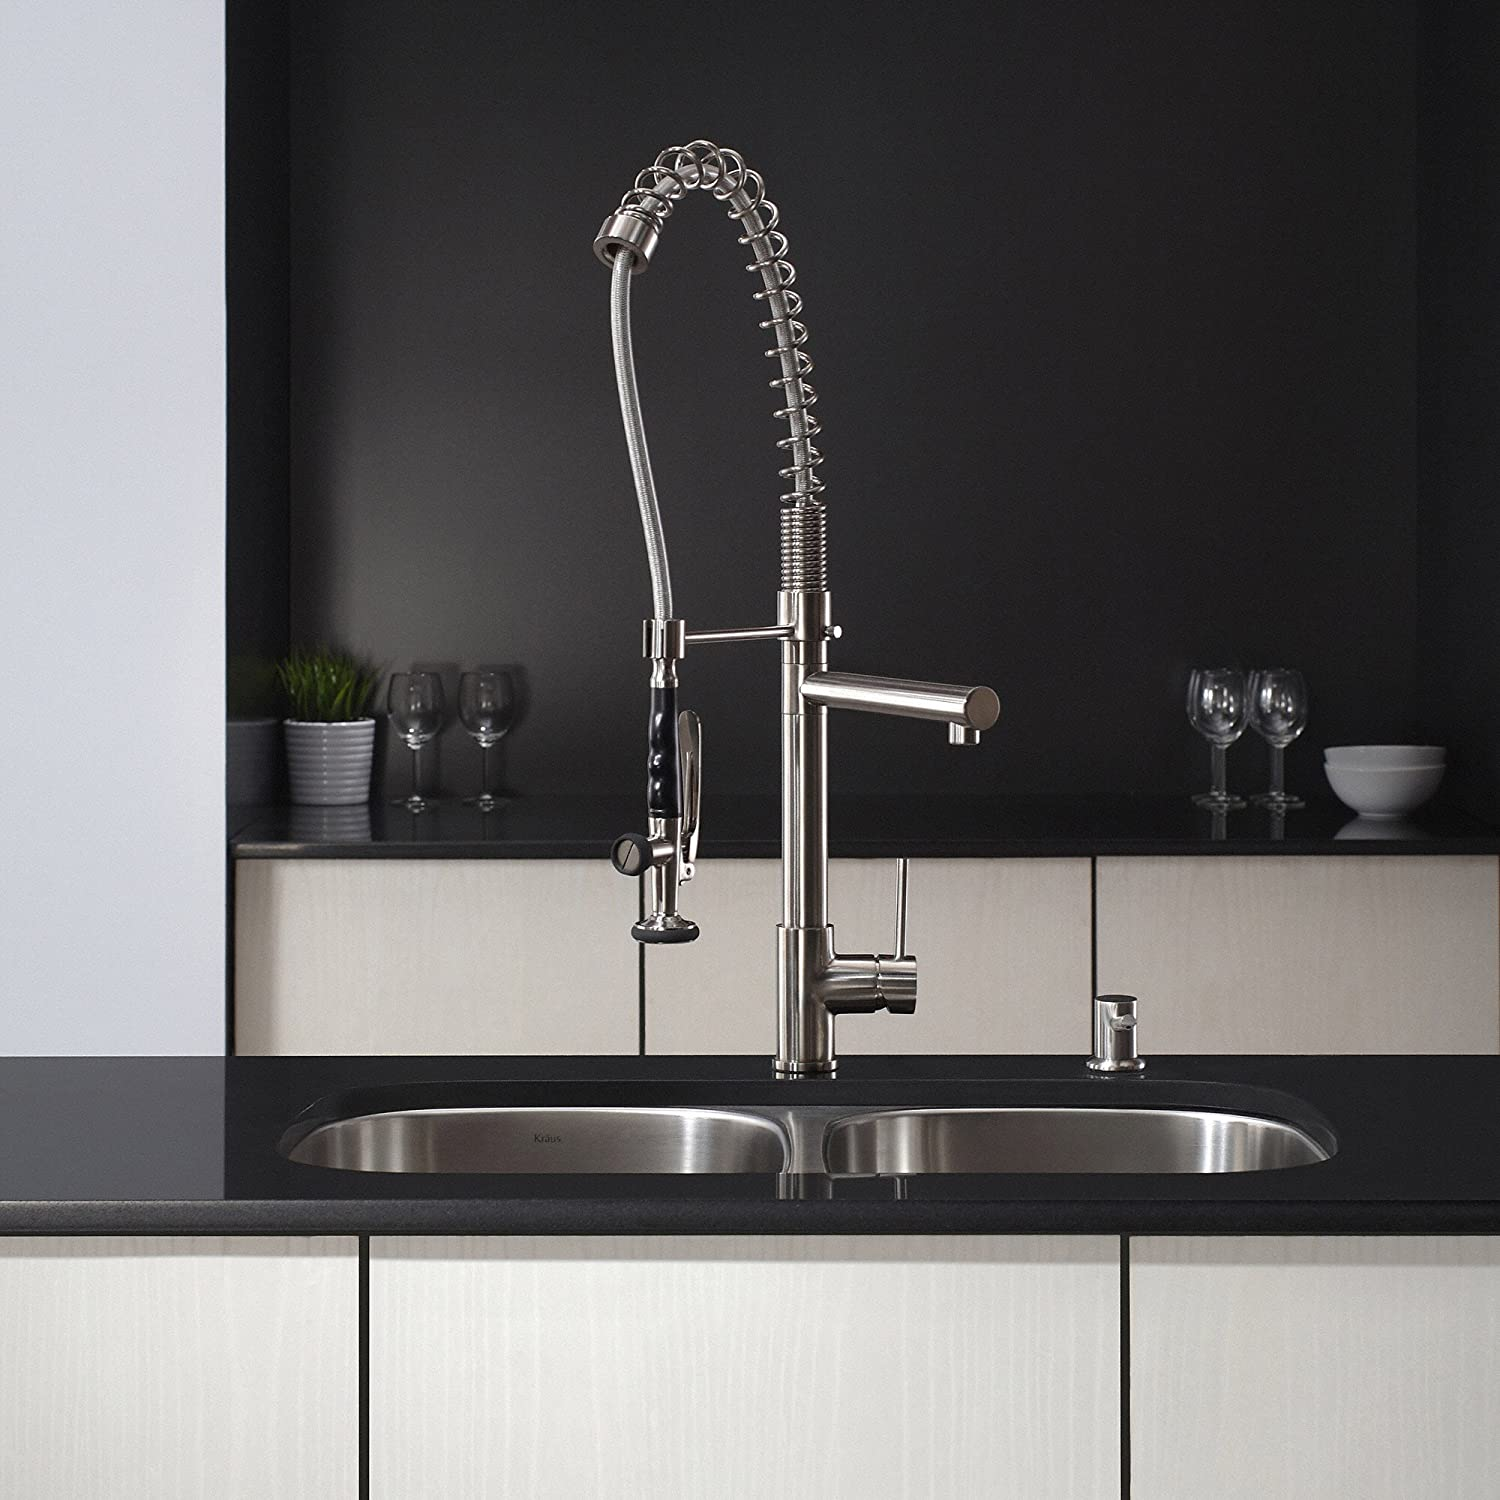 Kraus KPF 1602SS Single Handle Pull Down Kitchen Faucet Commercial Style  Pre Rinse, Stainless Steel     Amazon.com